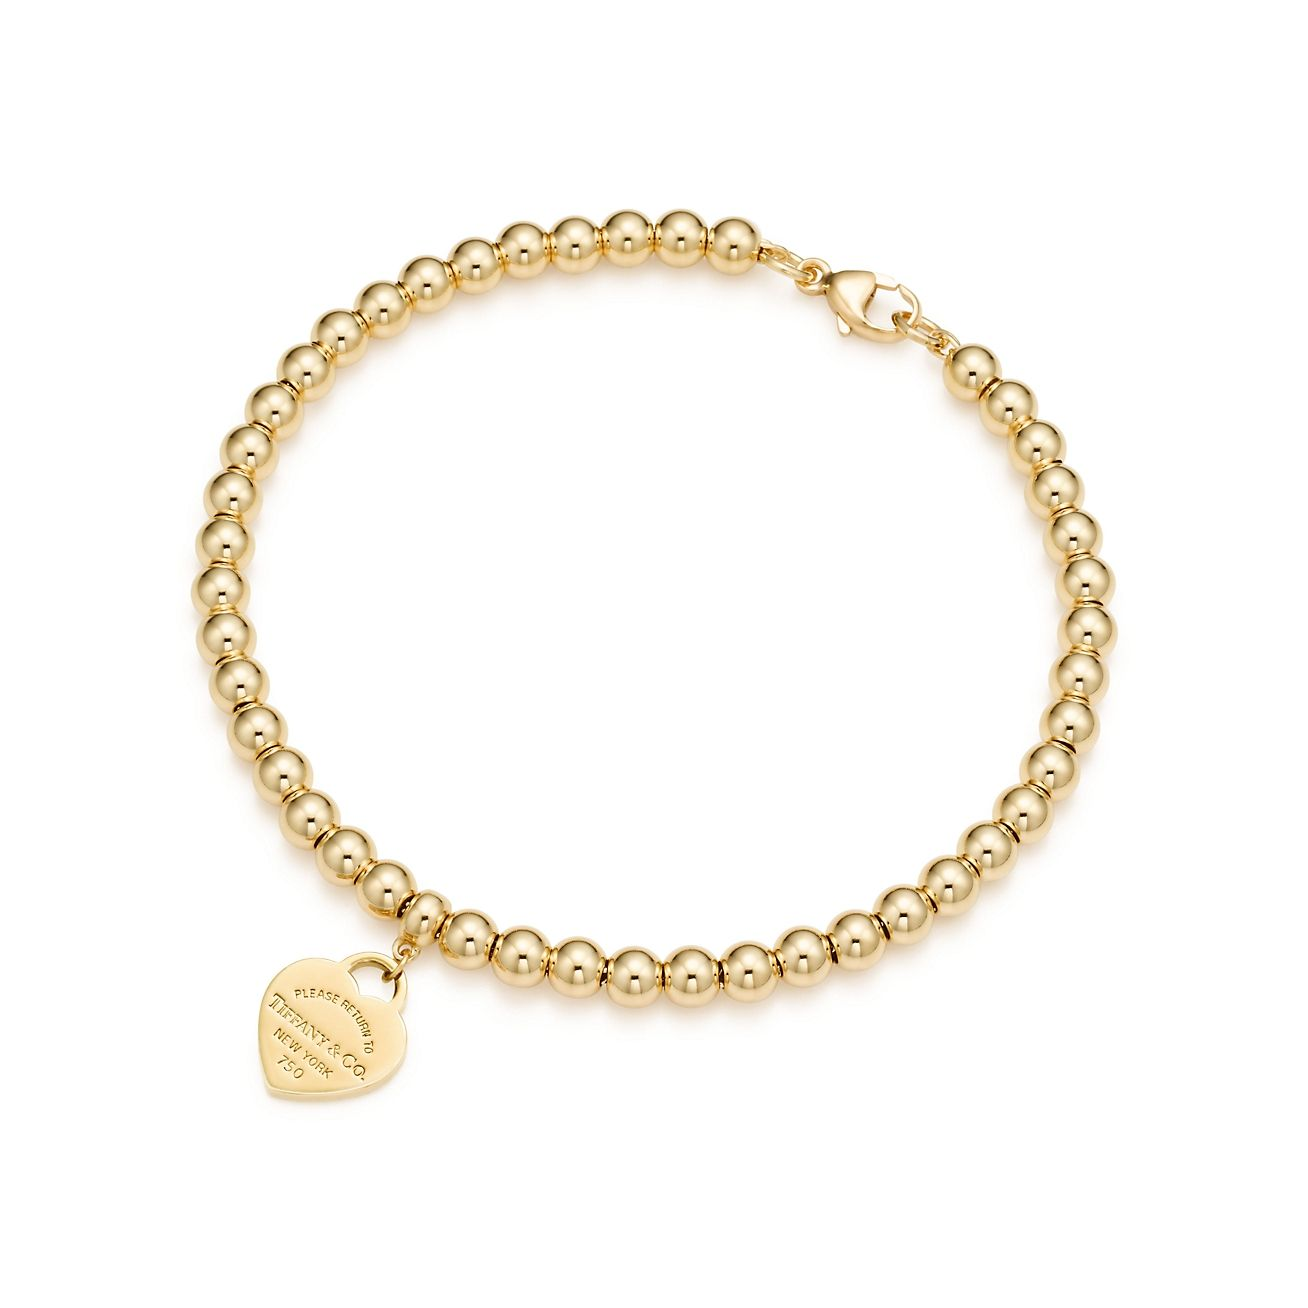 Return to tiffany bead bracelet us shopaholic pinterest